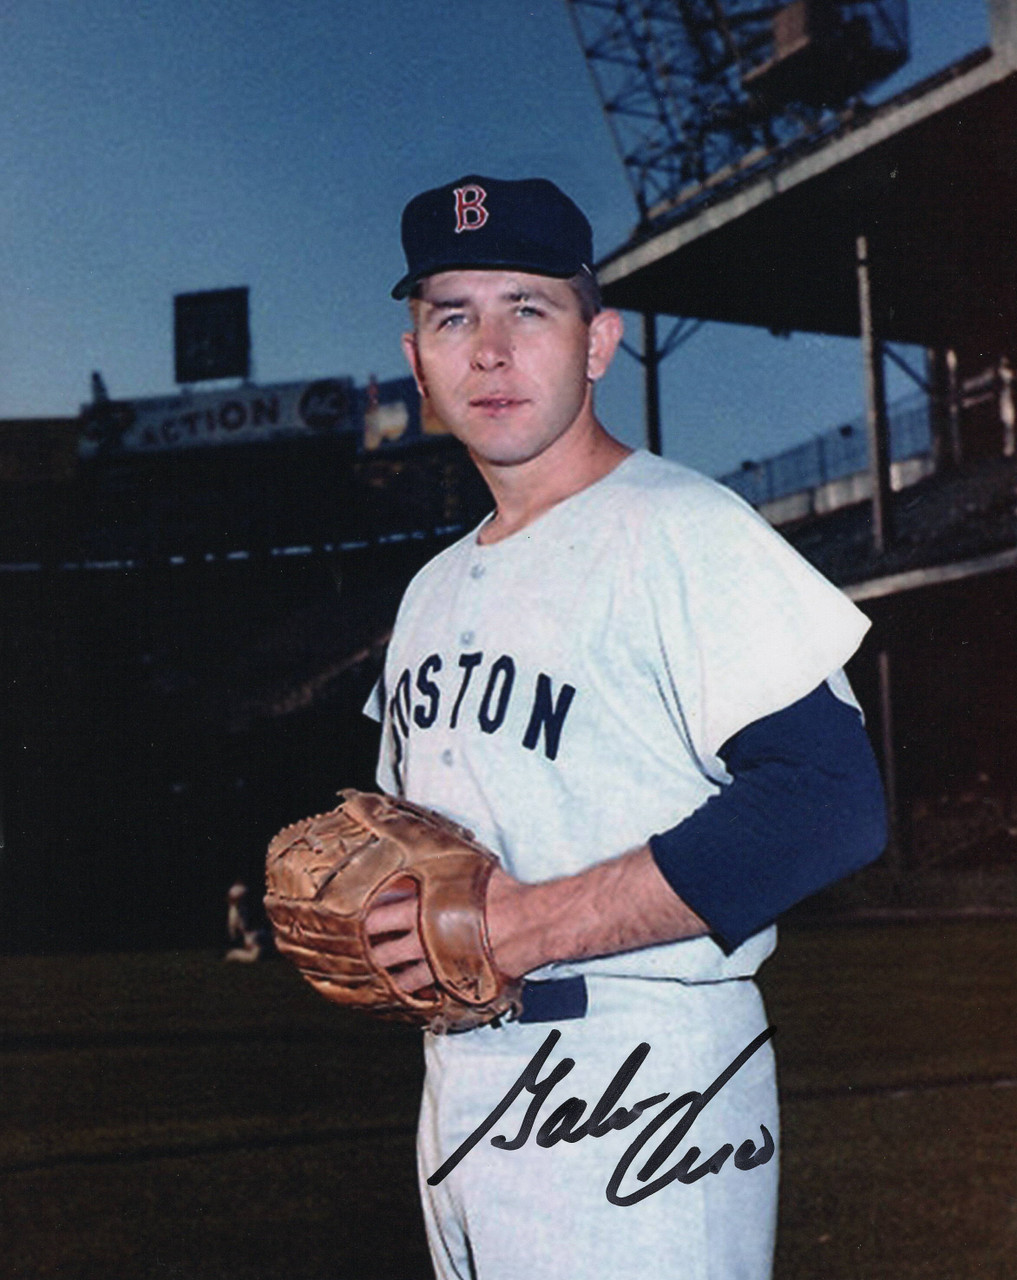 Galen Cisco Boston Red Sox 8x10 Autographed Photo - Certified Authentic